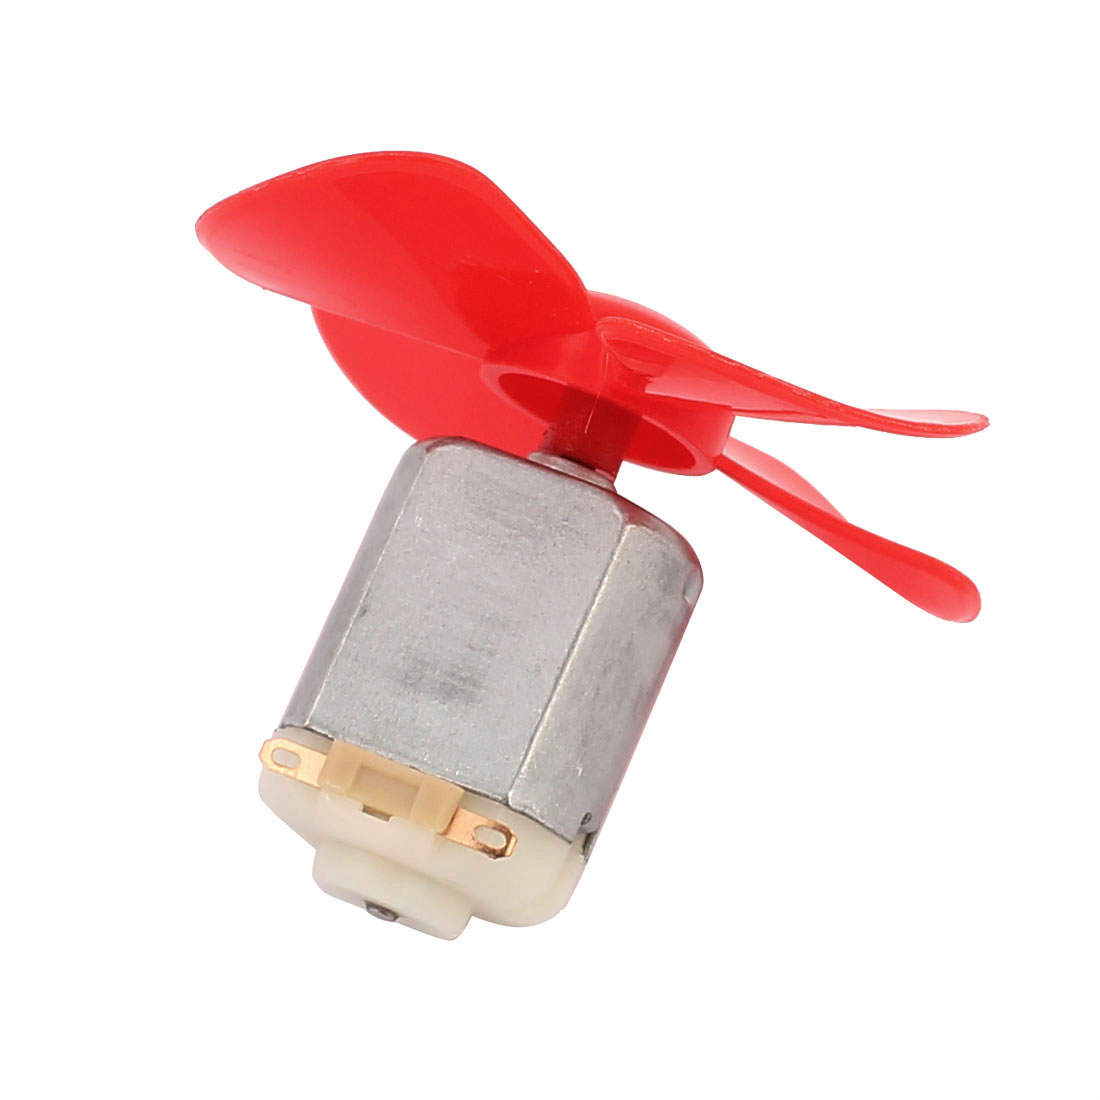 2Pcs DC12V 0.04A 14000RPM Aircraft Model Motor 4-vane Propeller 56mmx2mm - image 2 of 5